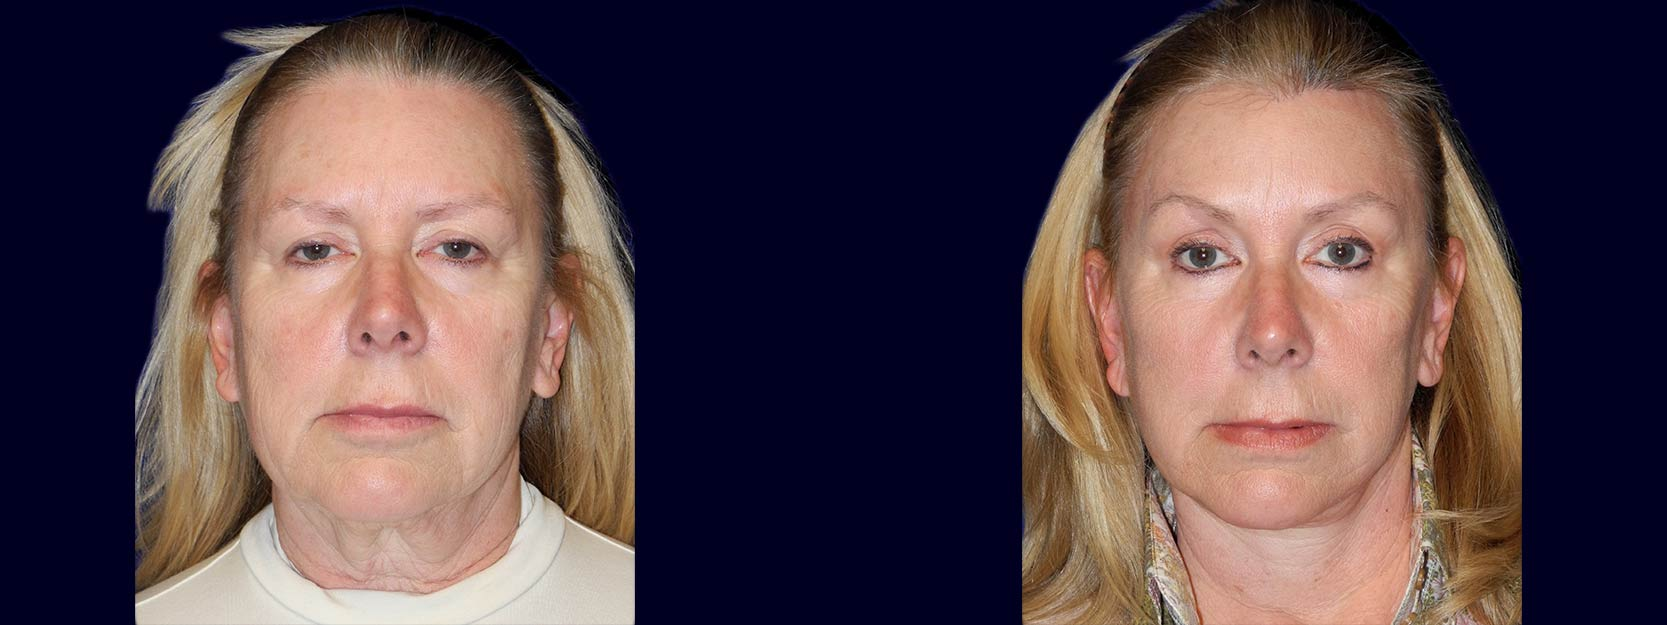 Frontal View - Facelift, Eyelid Surgery, & Browlift